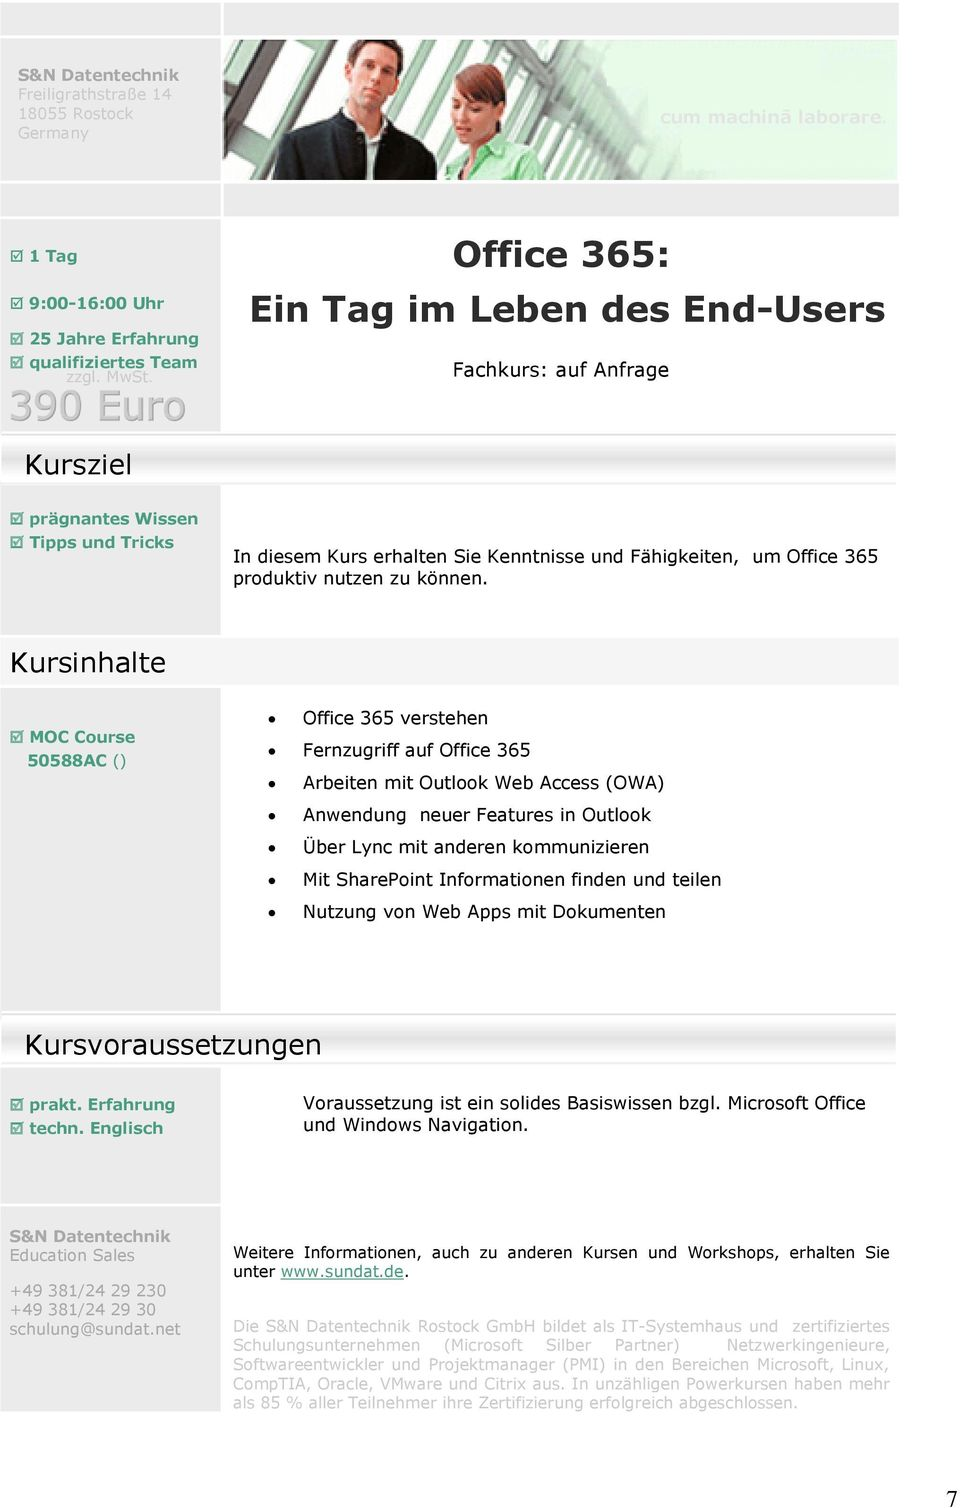 MOC Course 50588AC () Office 365 verstehen Fernzugriff auf Office 365 Arbeiten mit Outlook Web Access (OWA) Anwendung neuer Features in Outlook Über Lync mit anderen